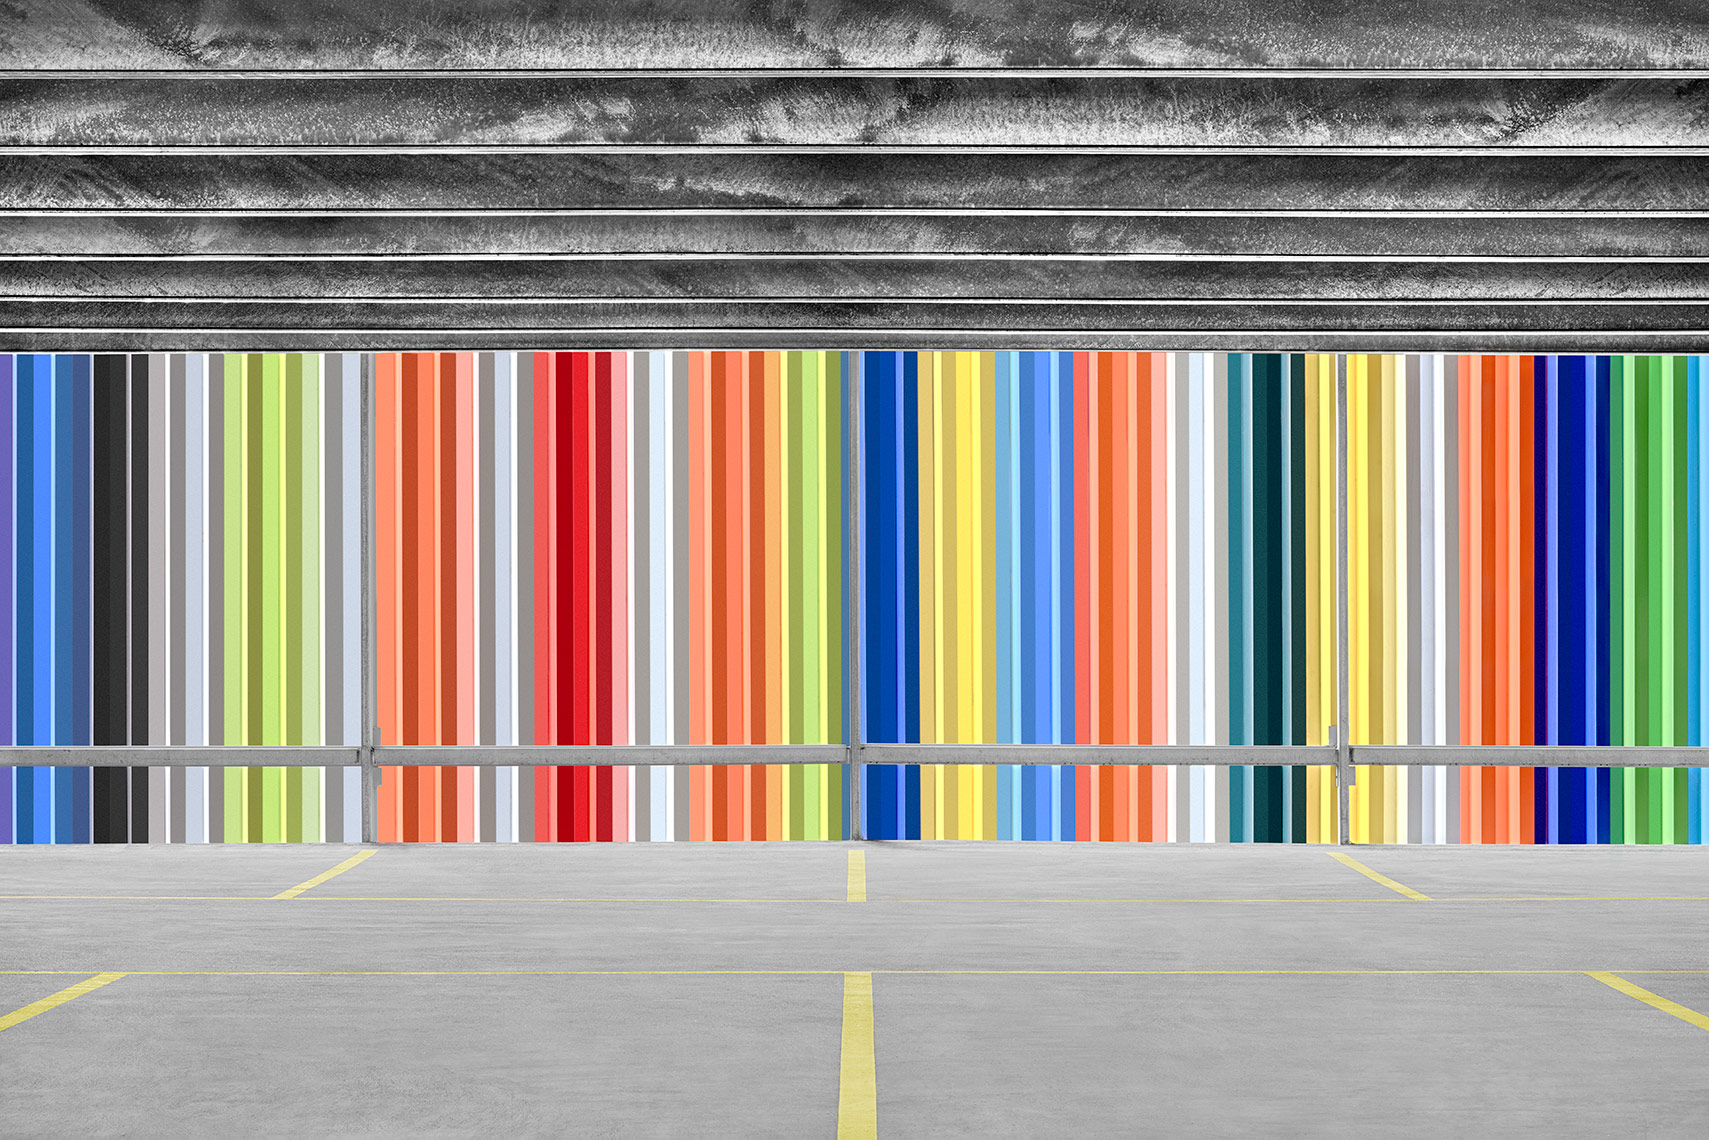 Zoe Wetherall / Architecture / Rainbow